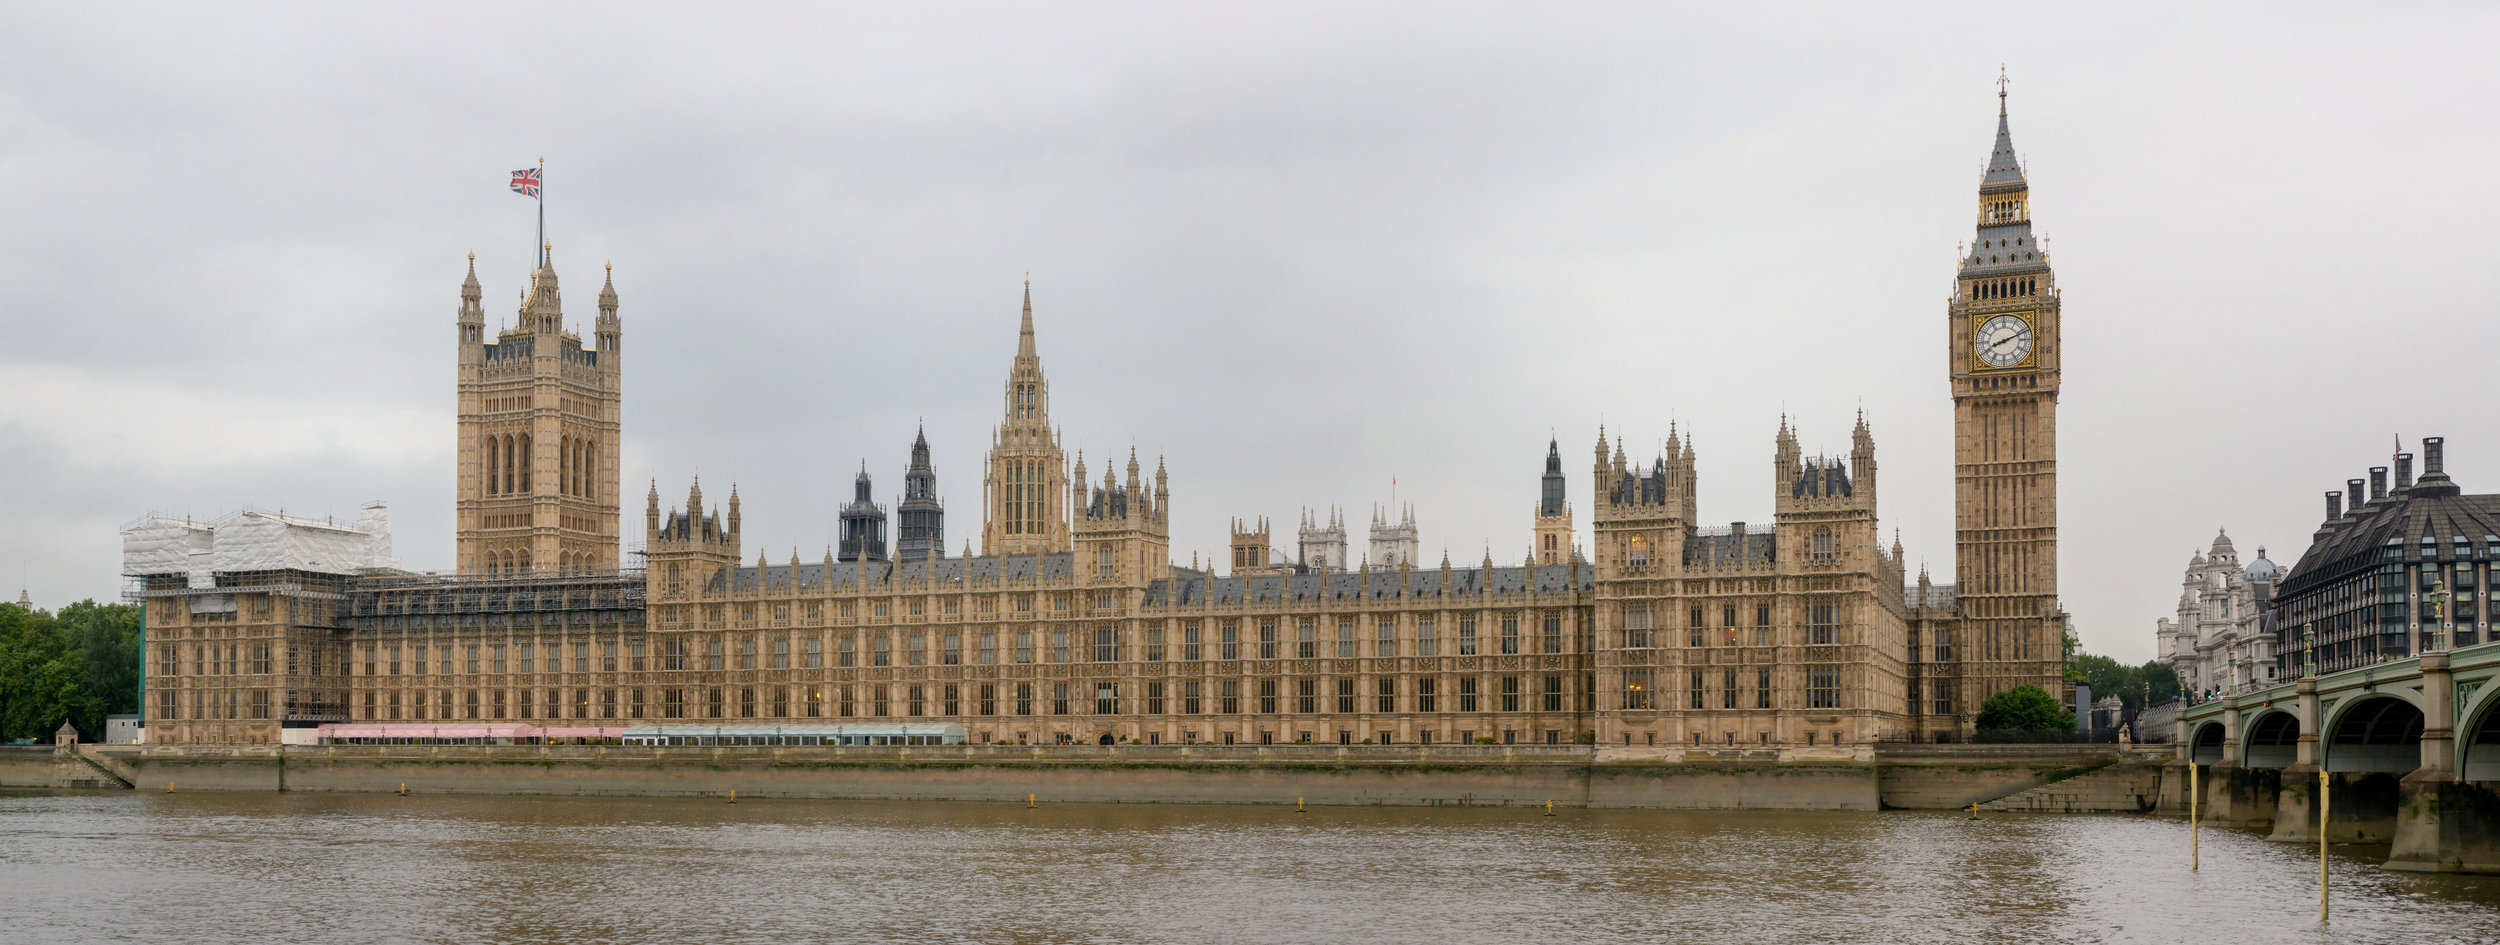 HOUSES_OF_PARLIAMENT_DSC_6965_pano_3